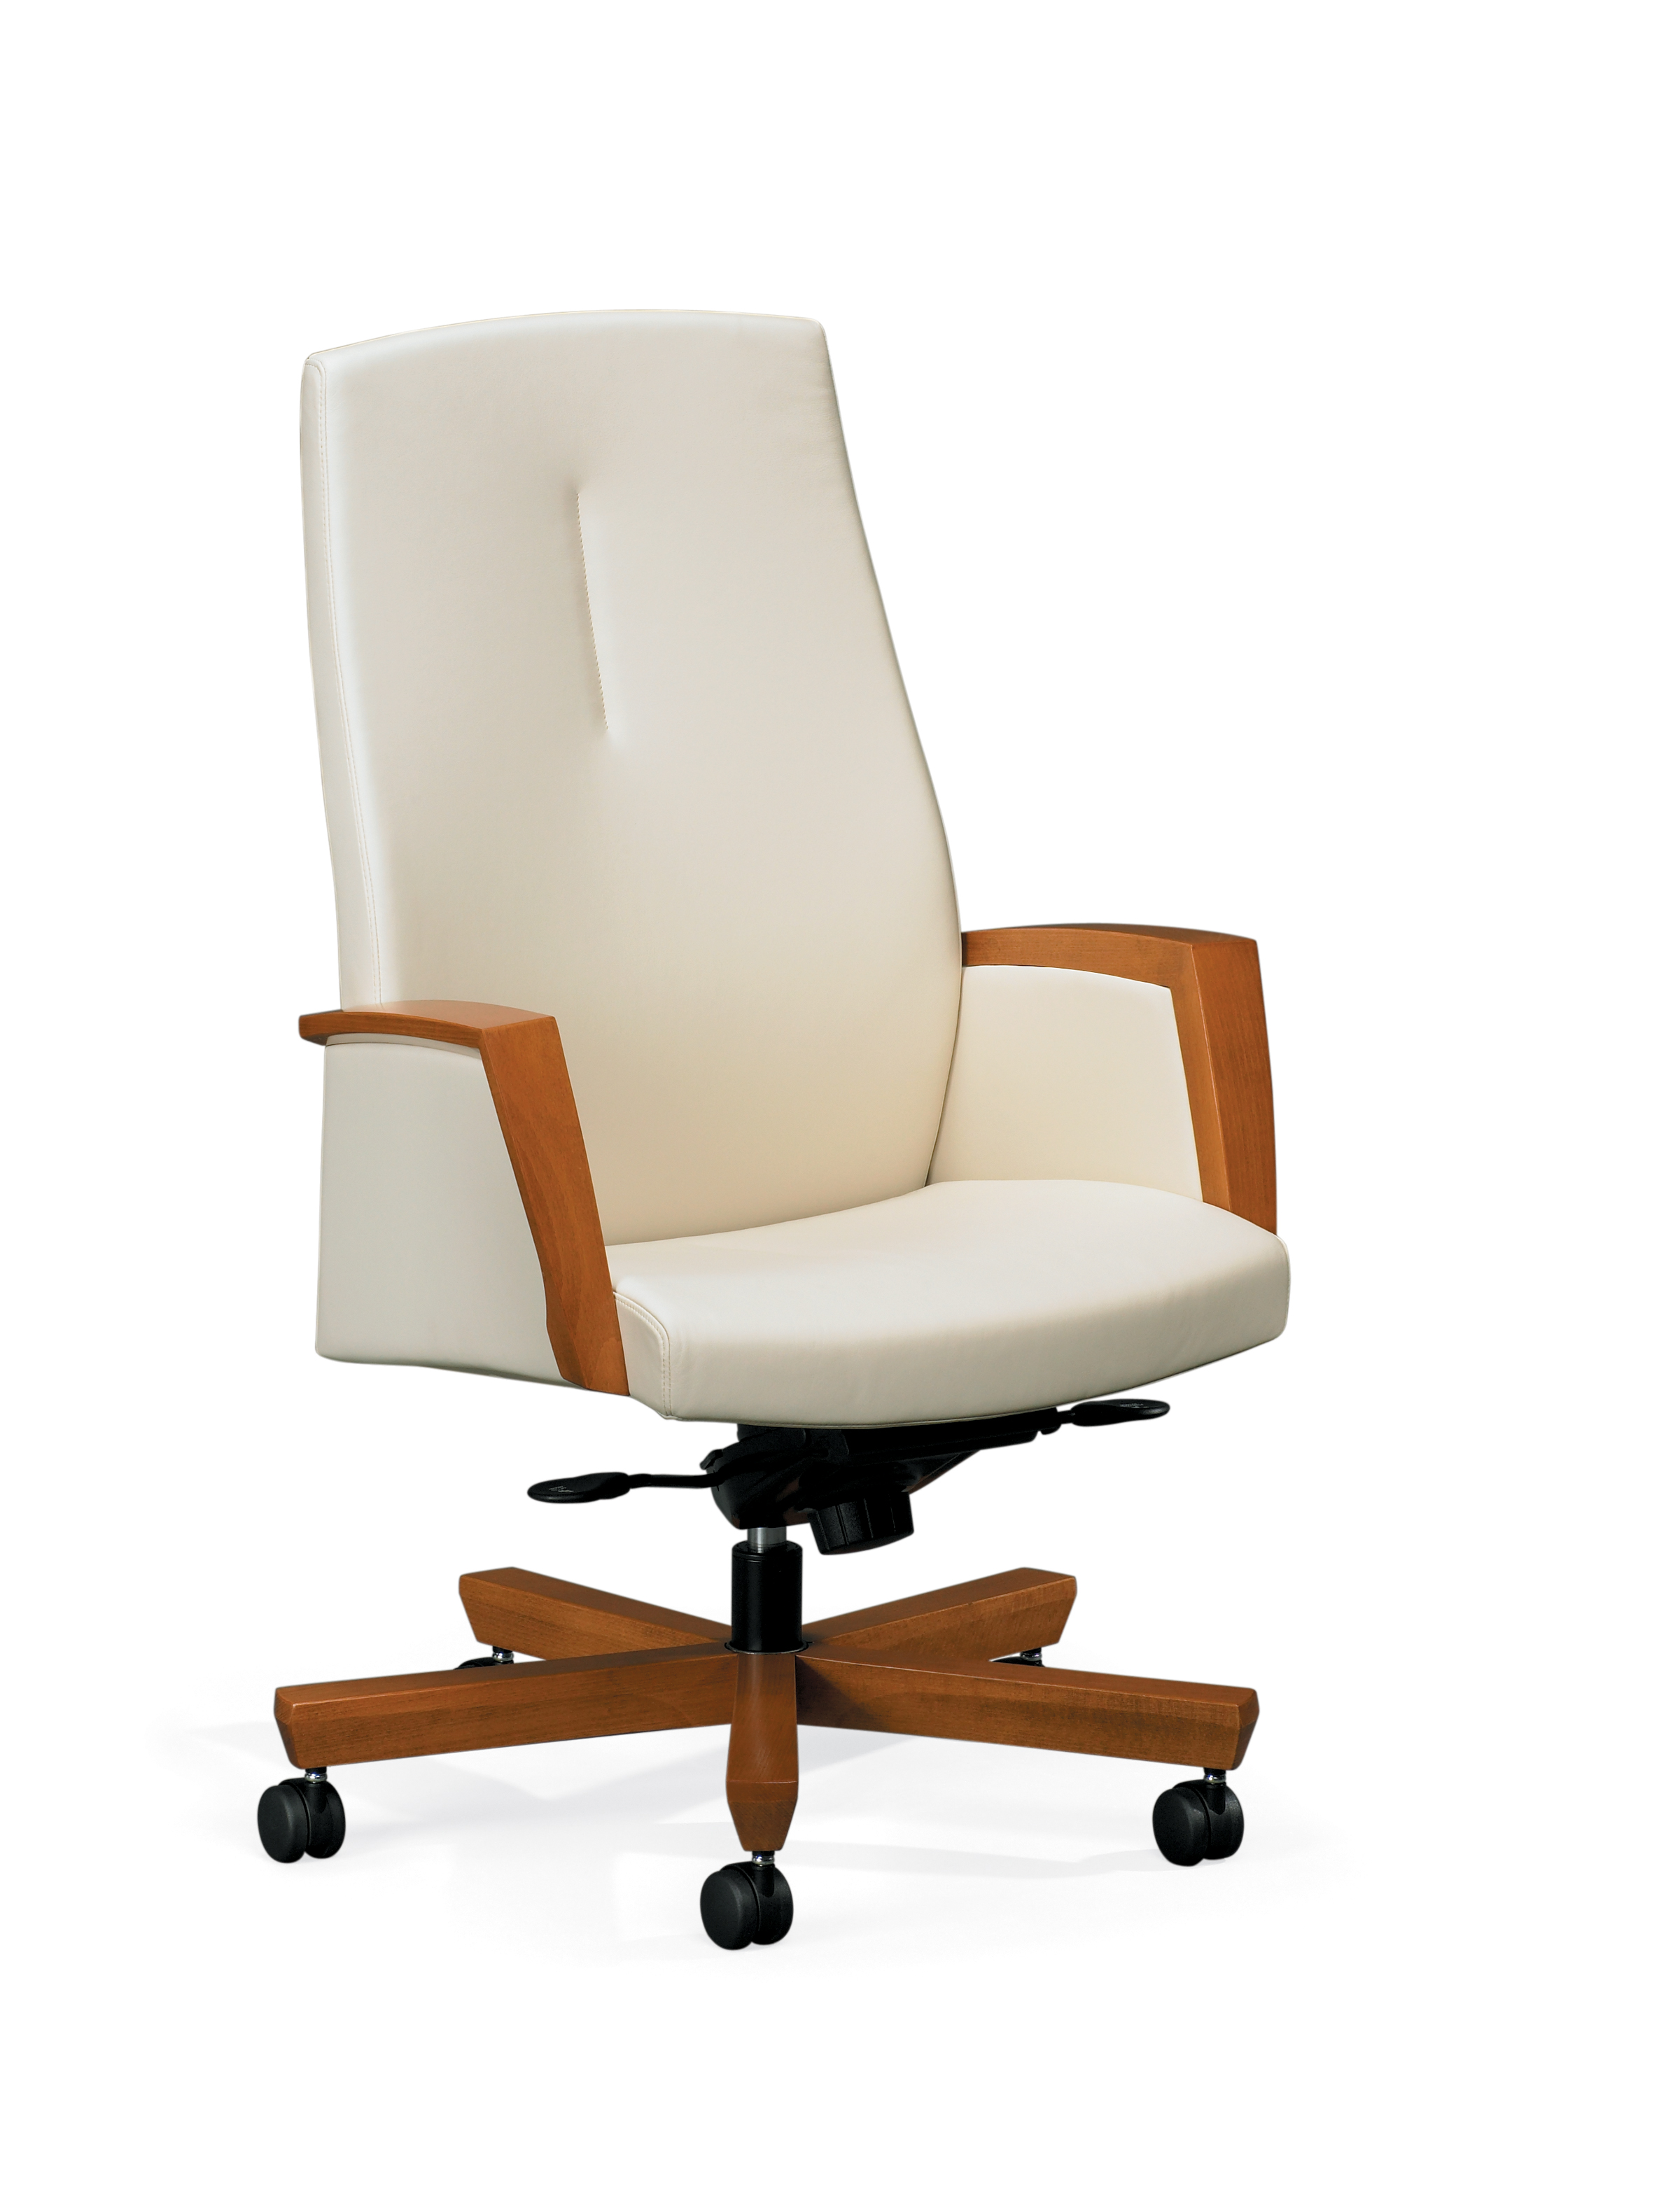 Paoli Diverge Office Chair Contemporay And Transitional